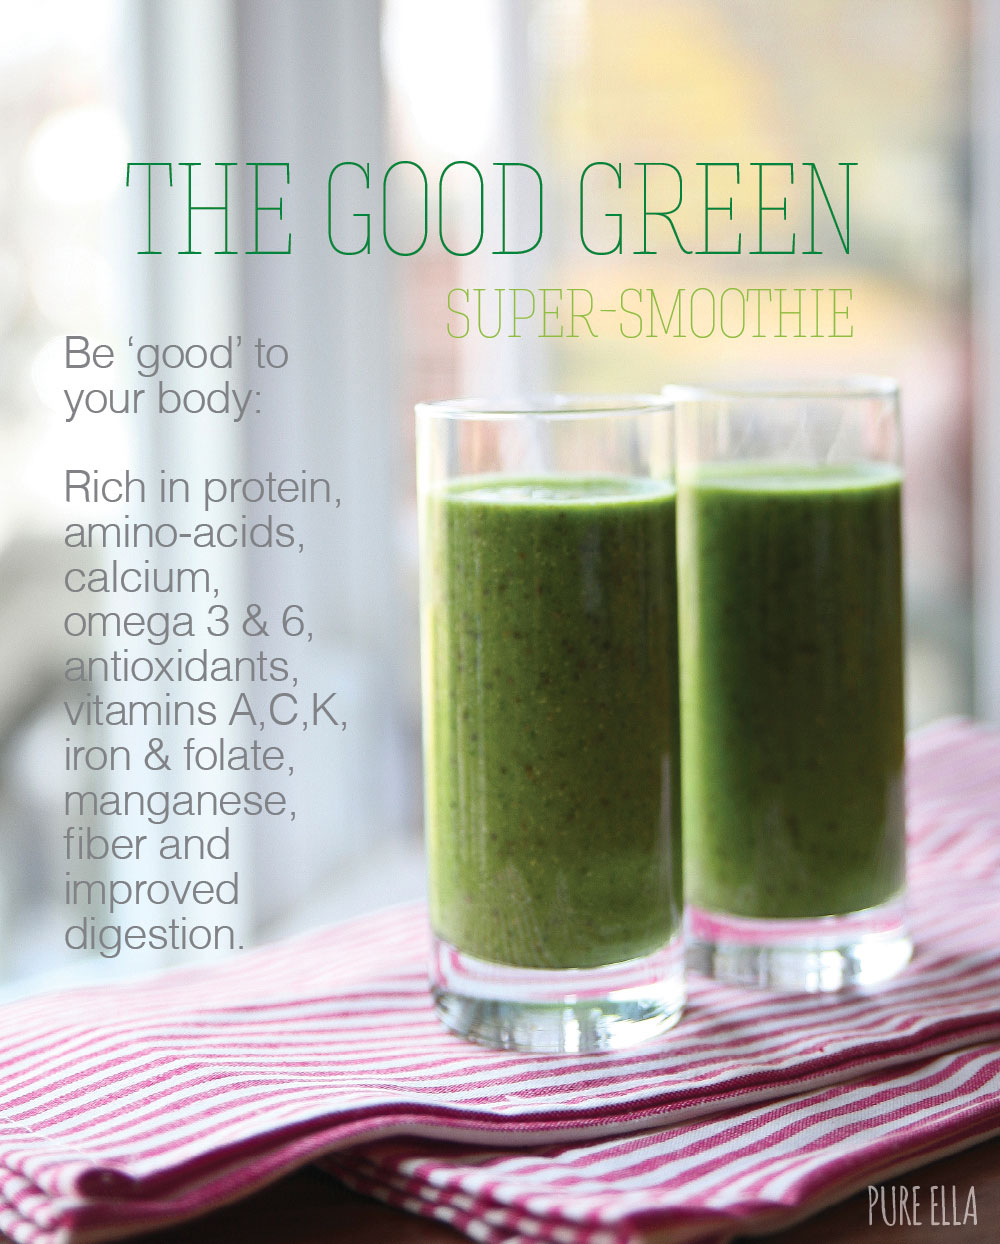 Pure-Ella-Good-Green-Super-Smoothie-vegan-gluten-free-protein-and-probiotic-smoothie3